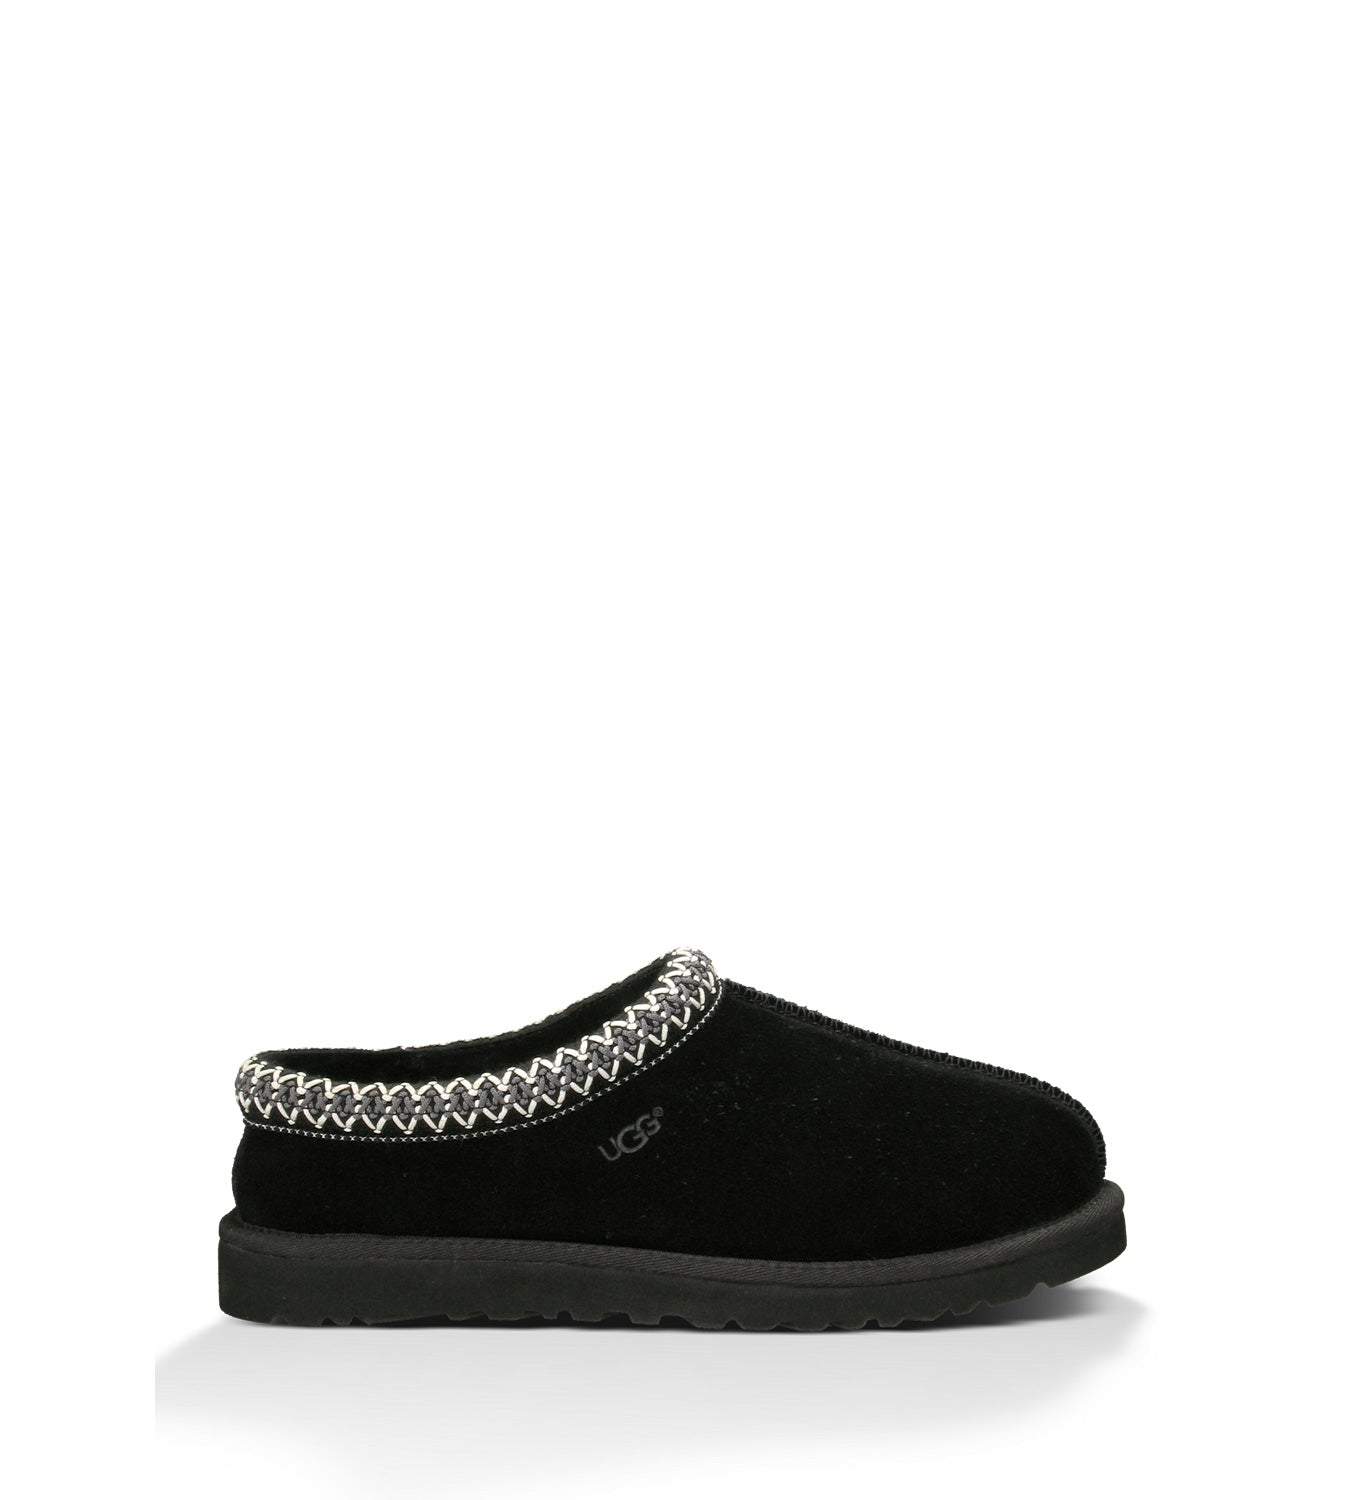 UGG Women Tasman Slipper in Black